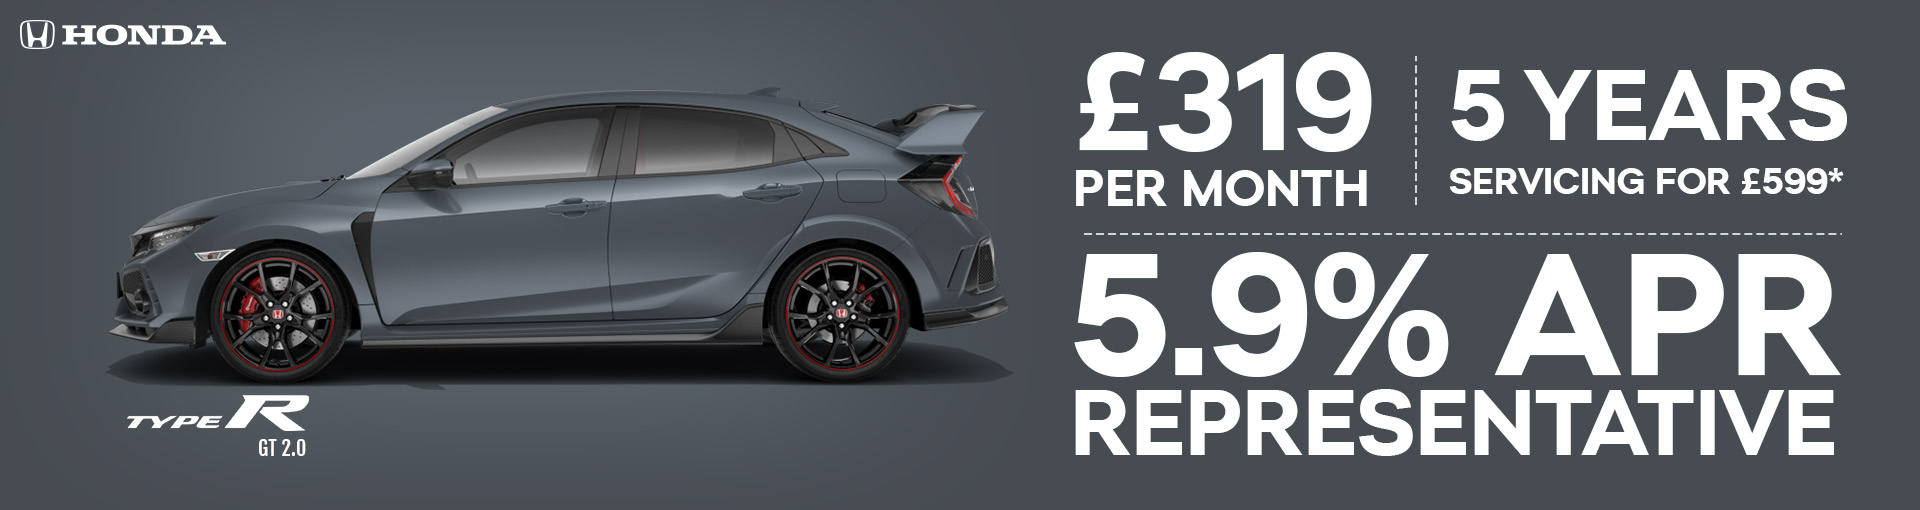 Type R GT 2.0 New Car Offer